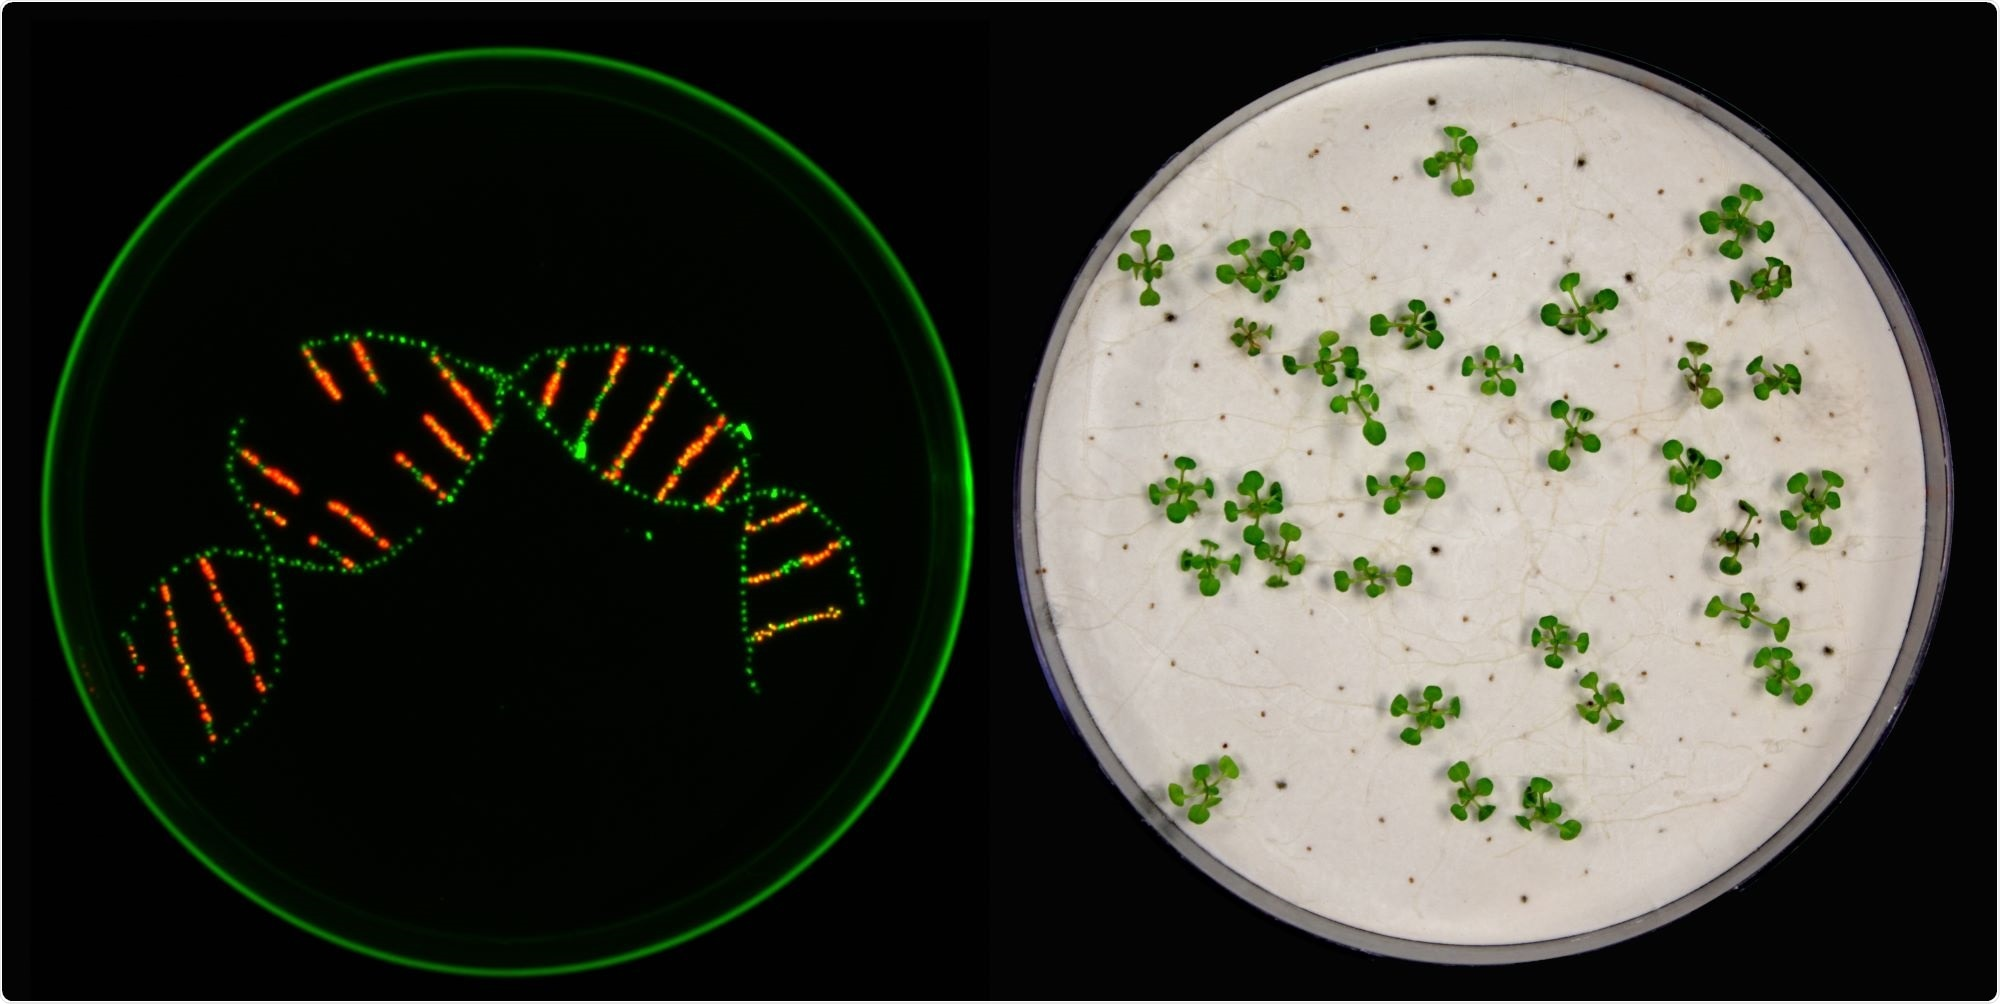 Improved version of CRISPR/Cas9 tool helps study the interaction of various genes